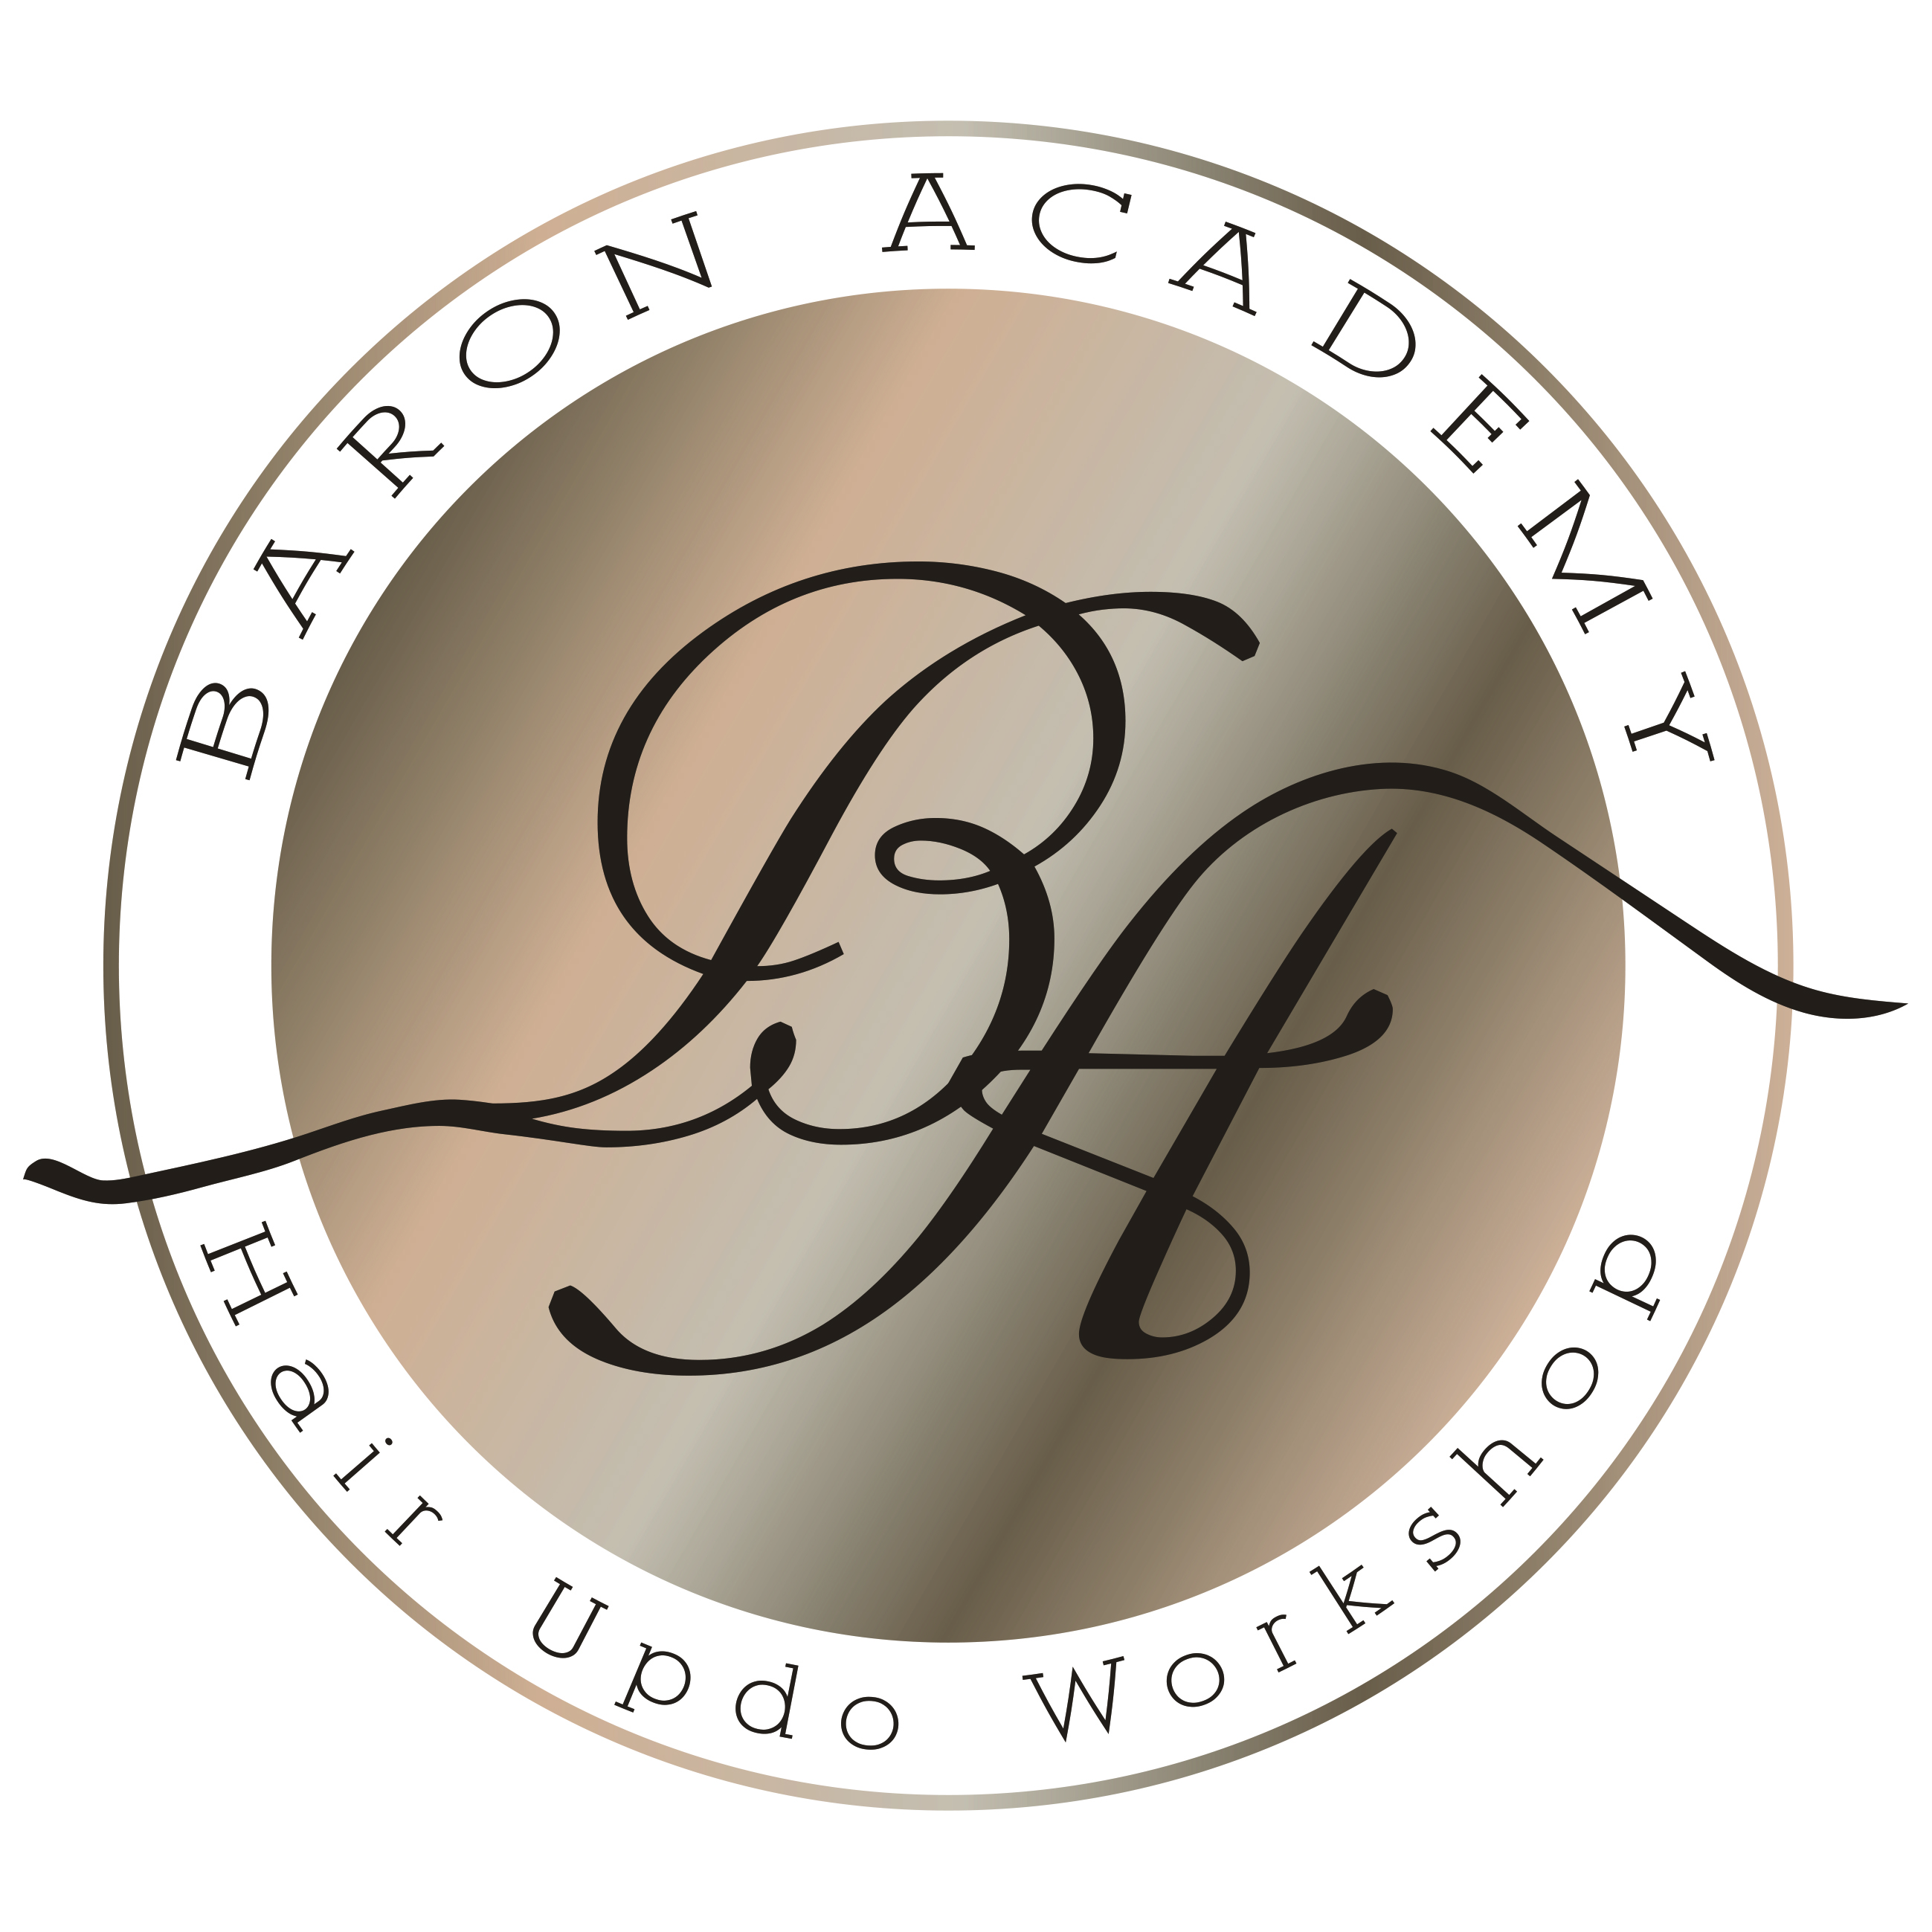 Brons Updo Workshops